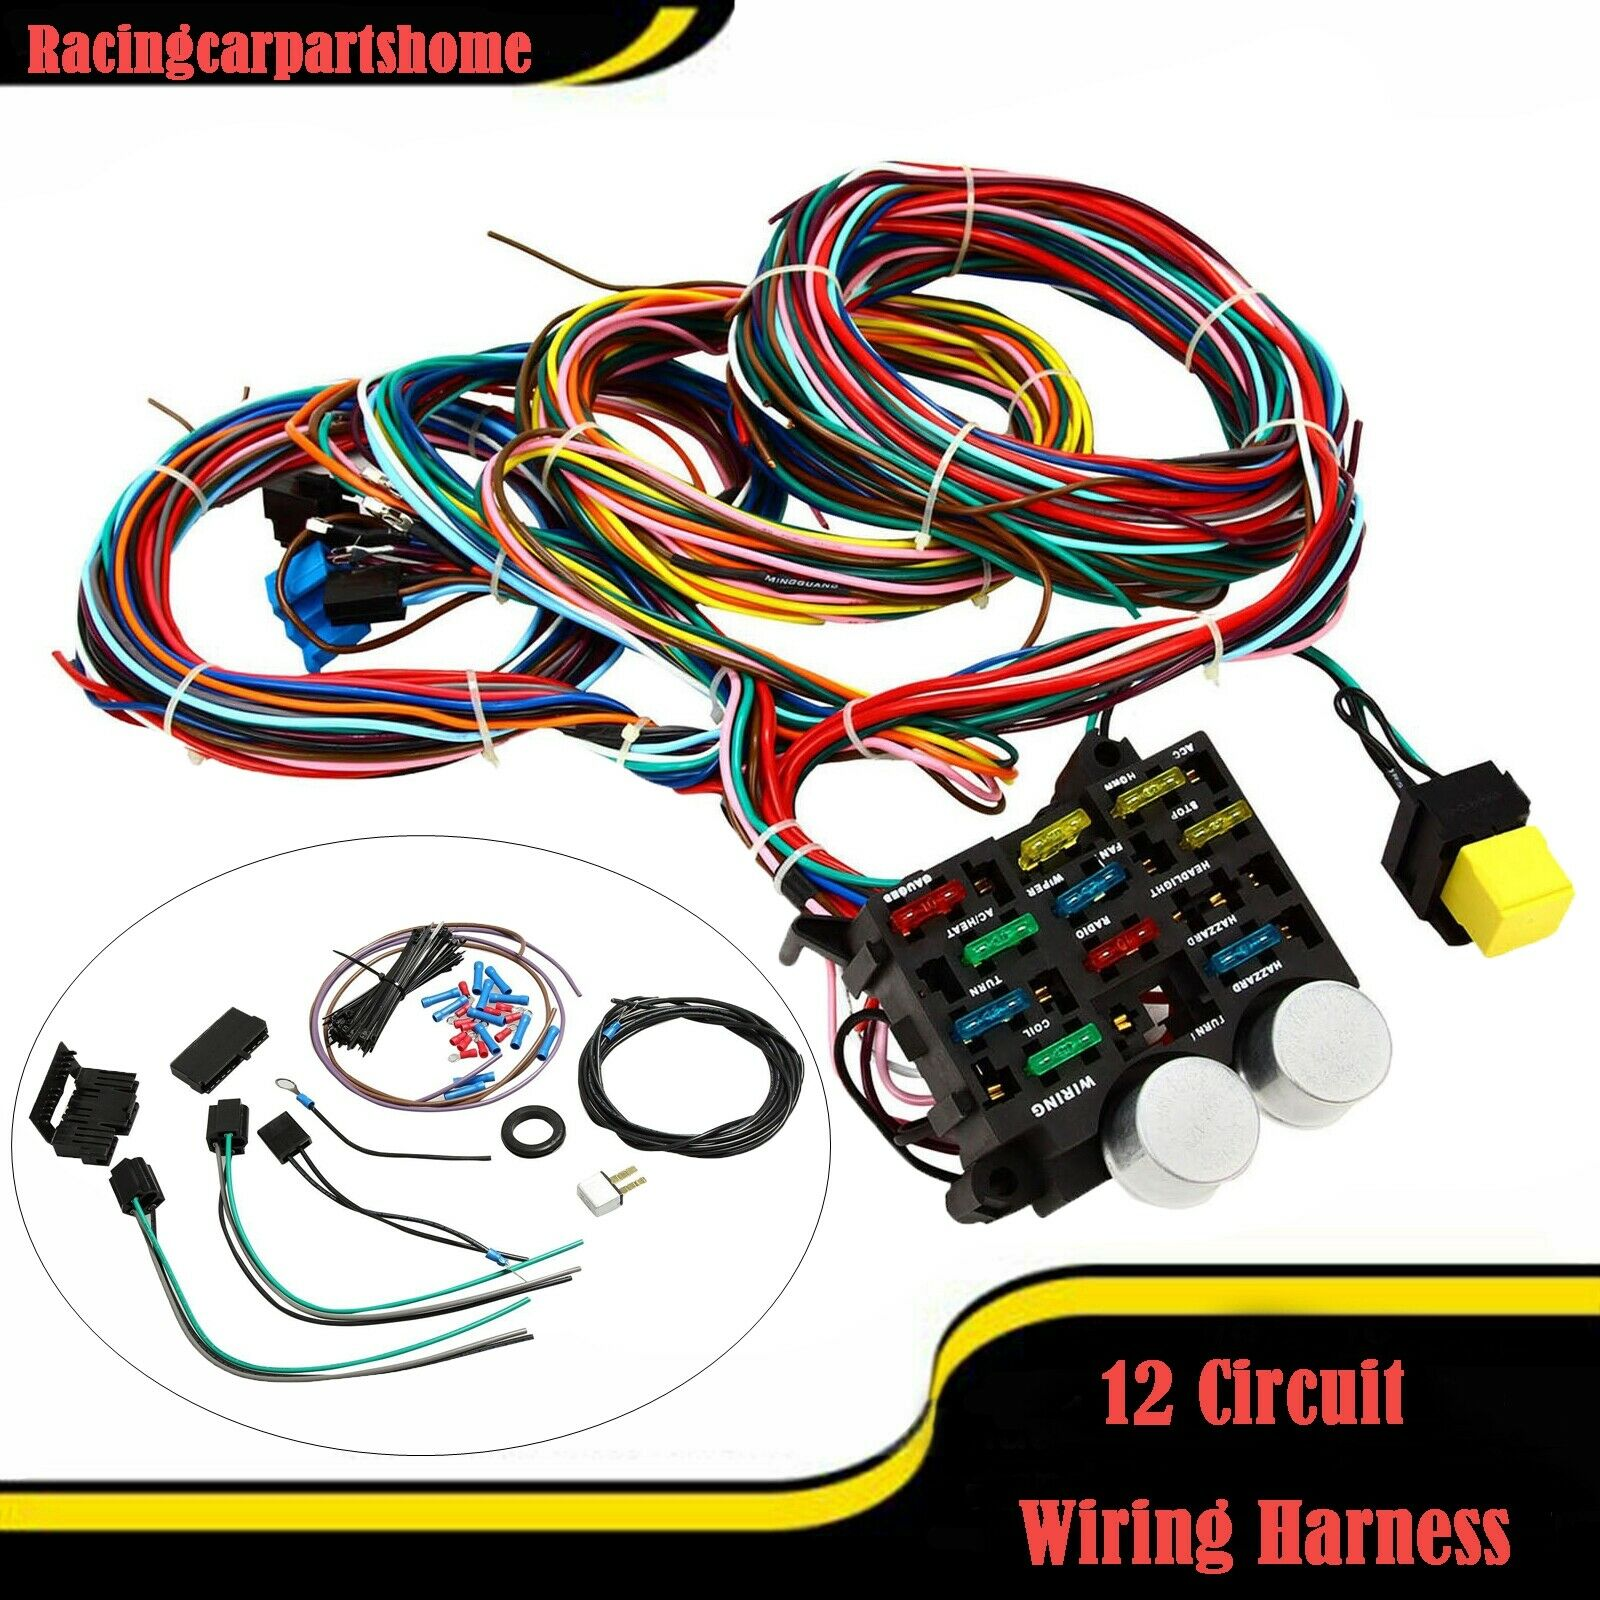 universal wire 12 circuit hot rod wiring harness for chevy mopar rh picclick com street rod wiring harness diagram Street Rod Wiring Harness Kit